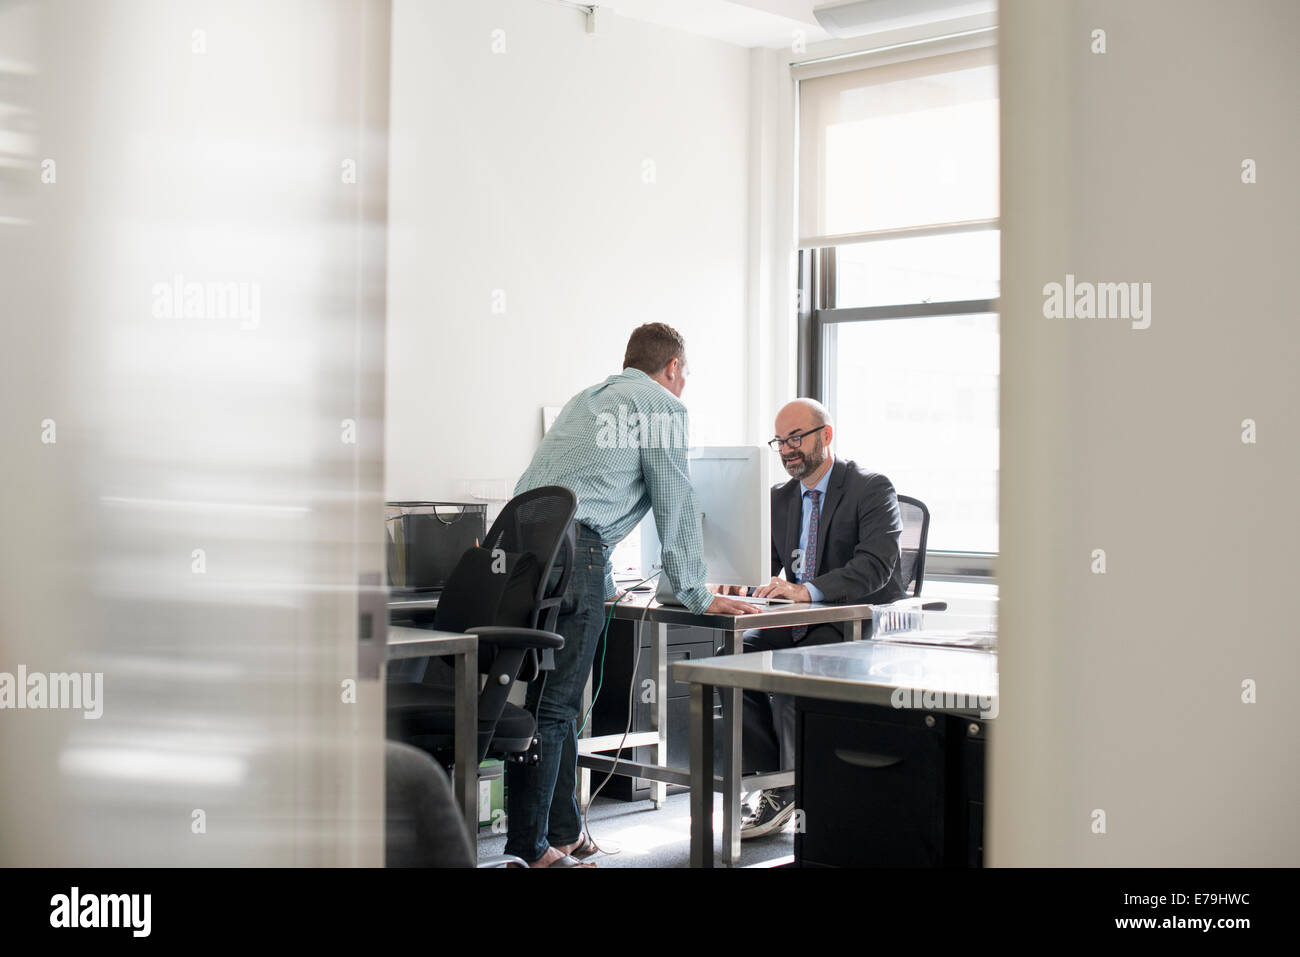 Office life. Two people talking to each other over a desk. - Stock Image